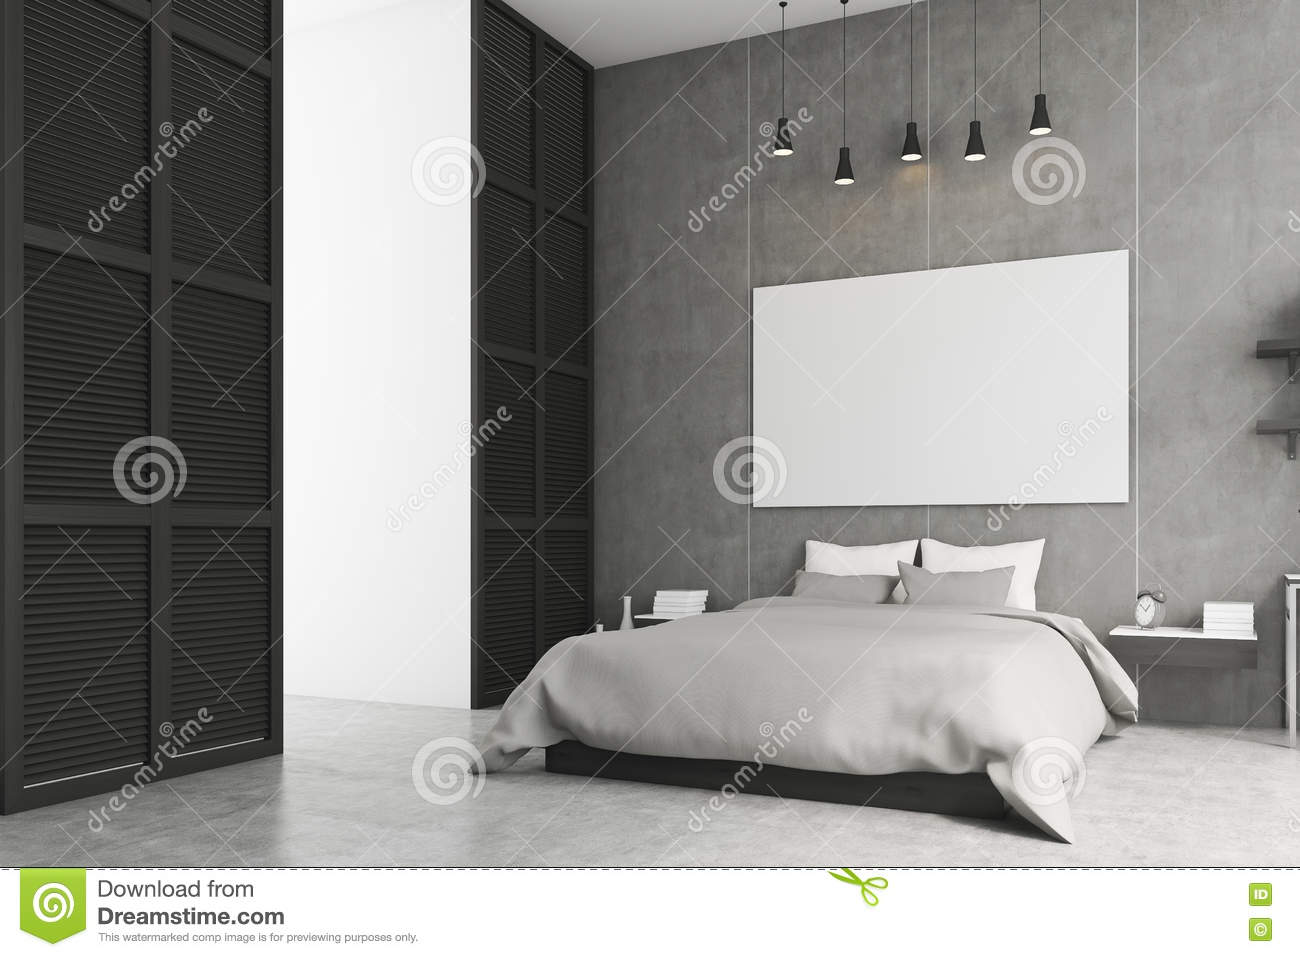 King Royalty Poster Bed